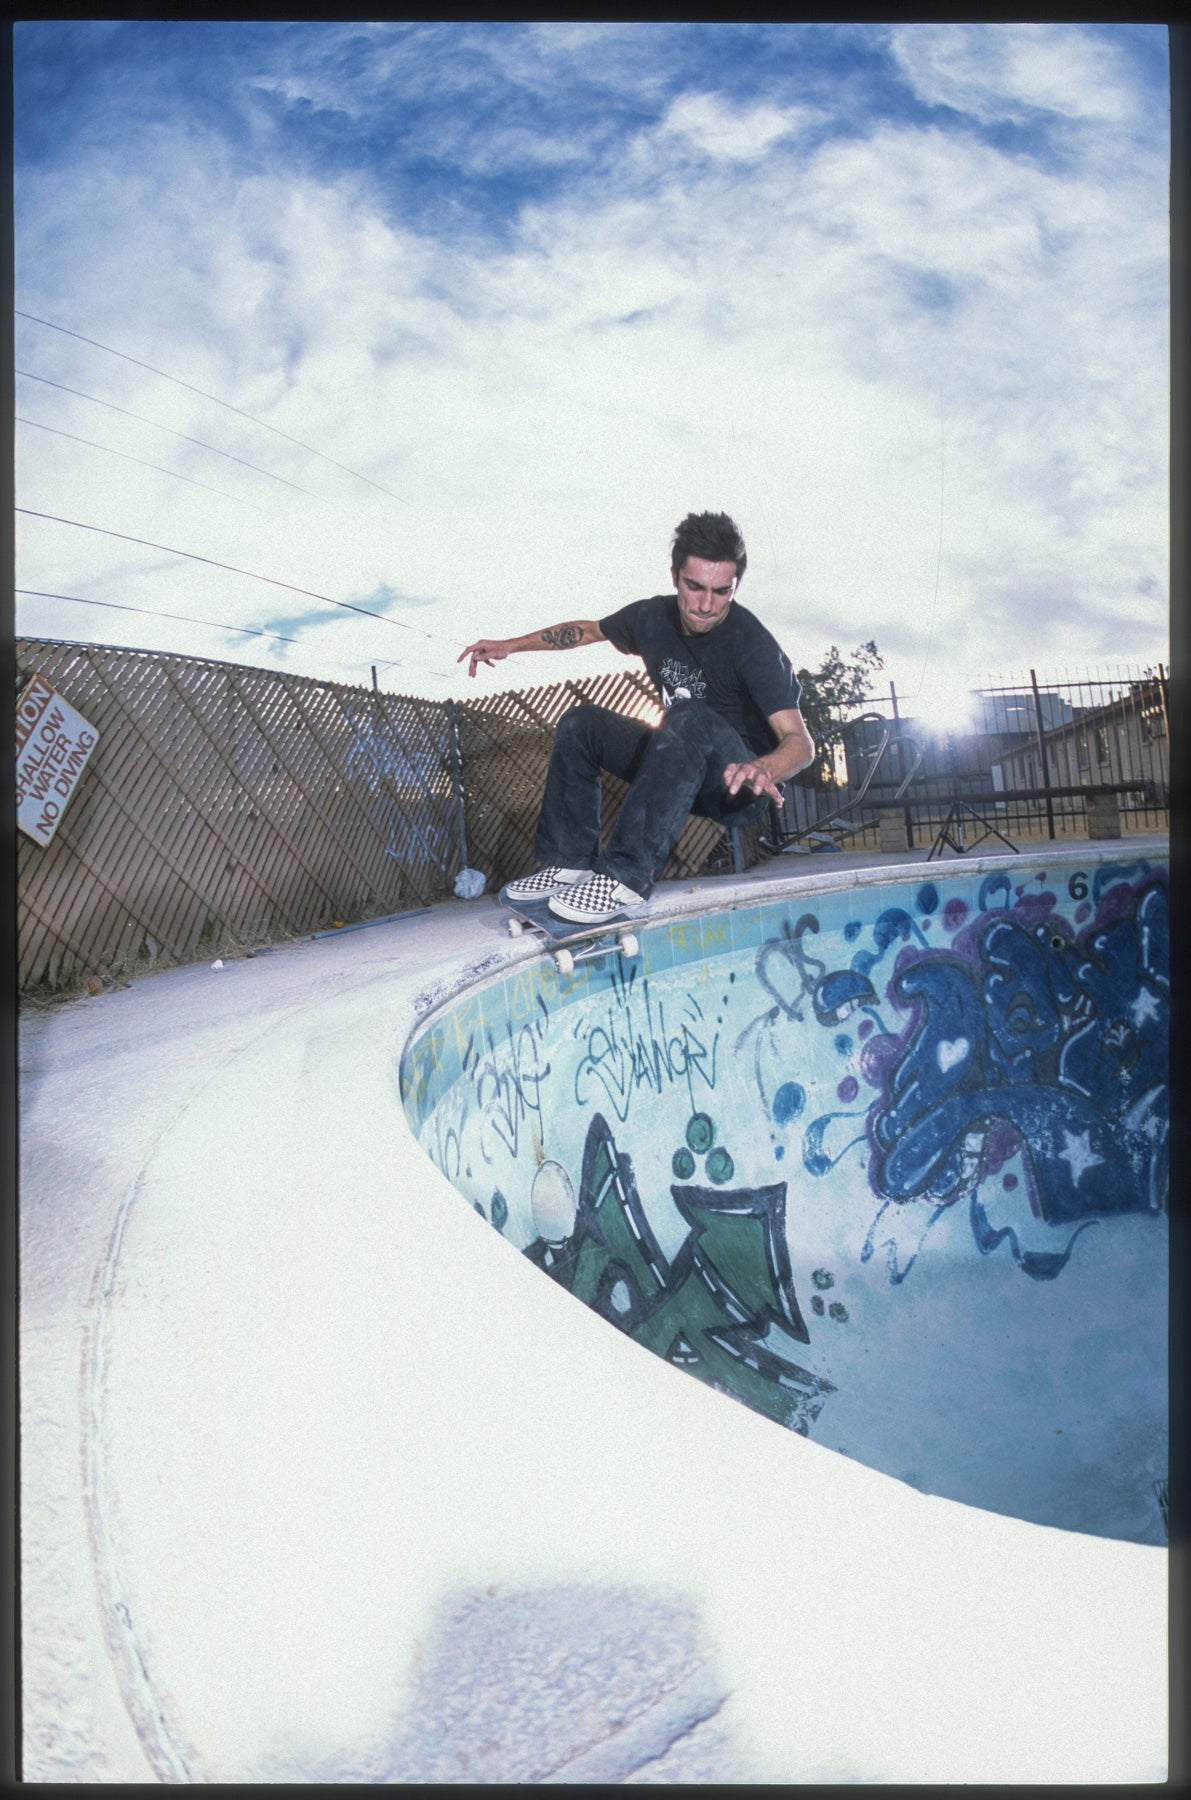 Image of Tony Trujillo, Arizona 2006, Anti Hero trip, by Tobin Yelland